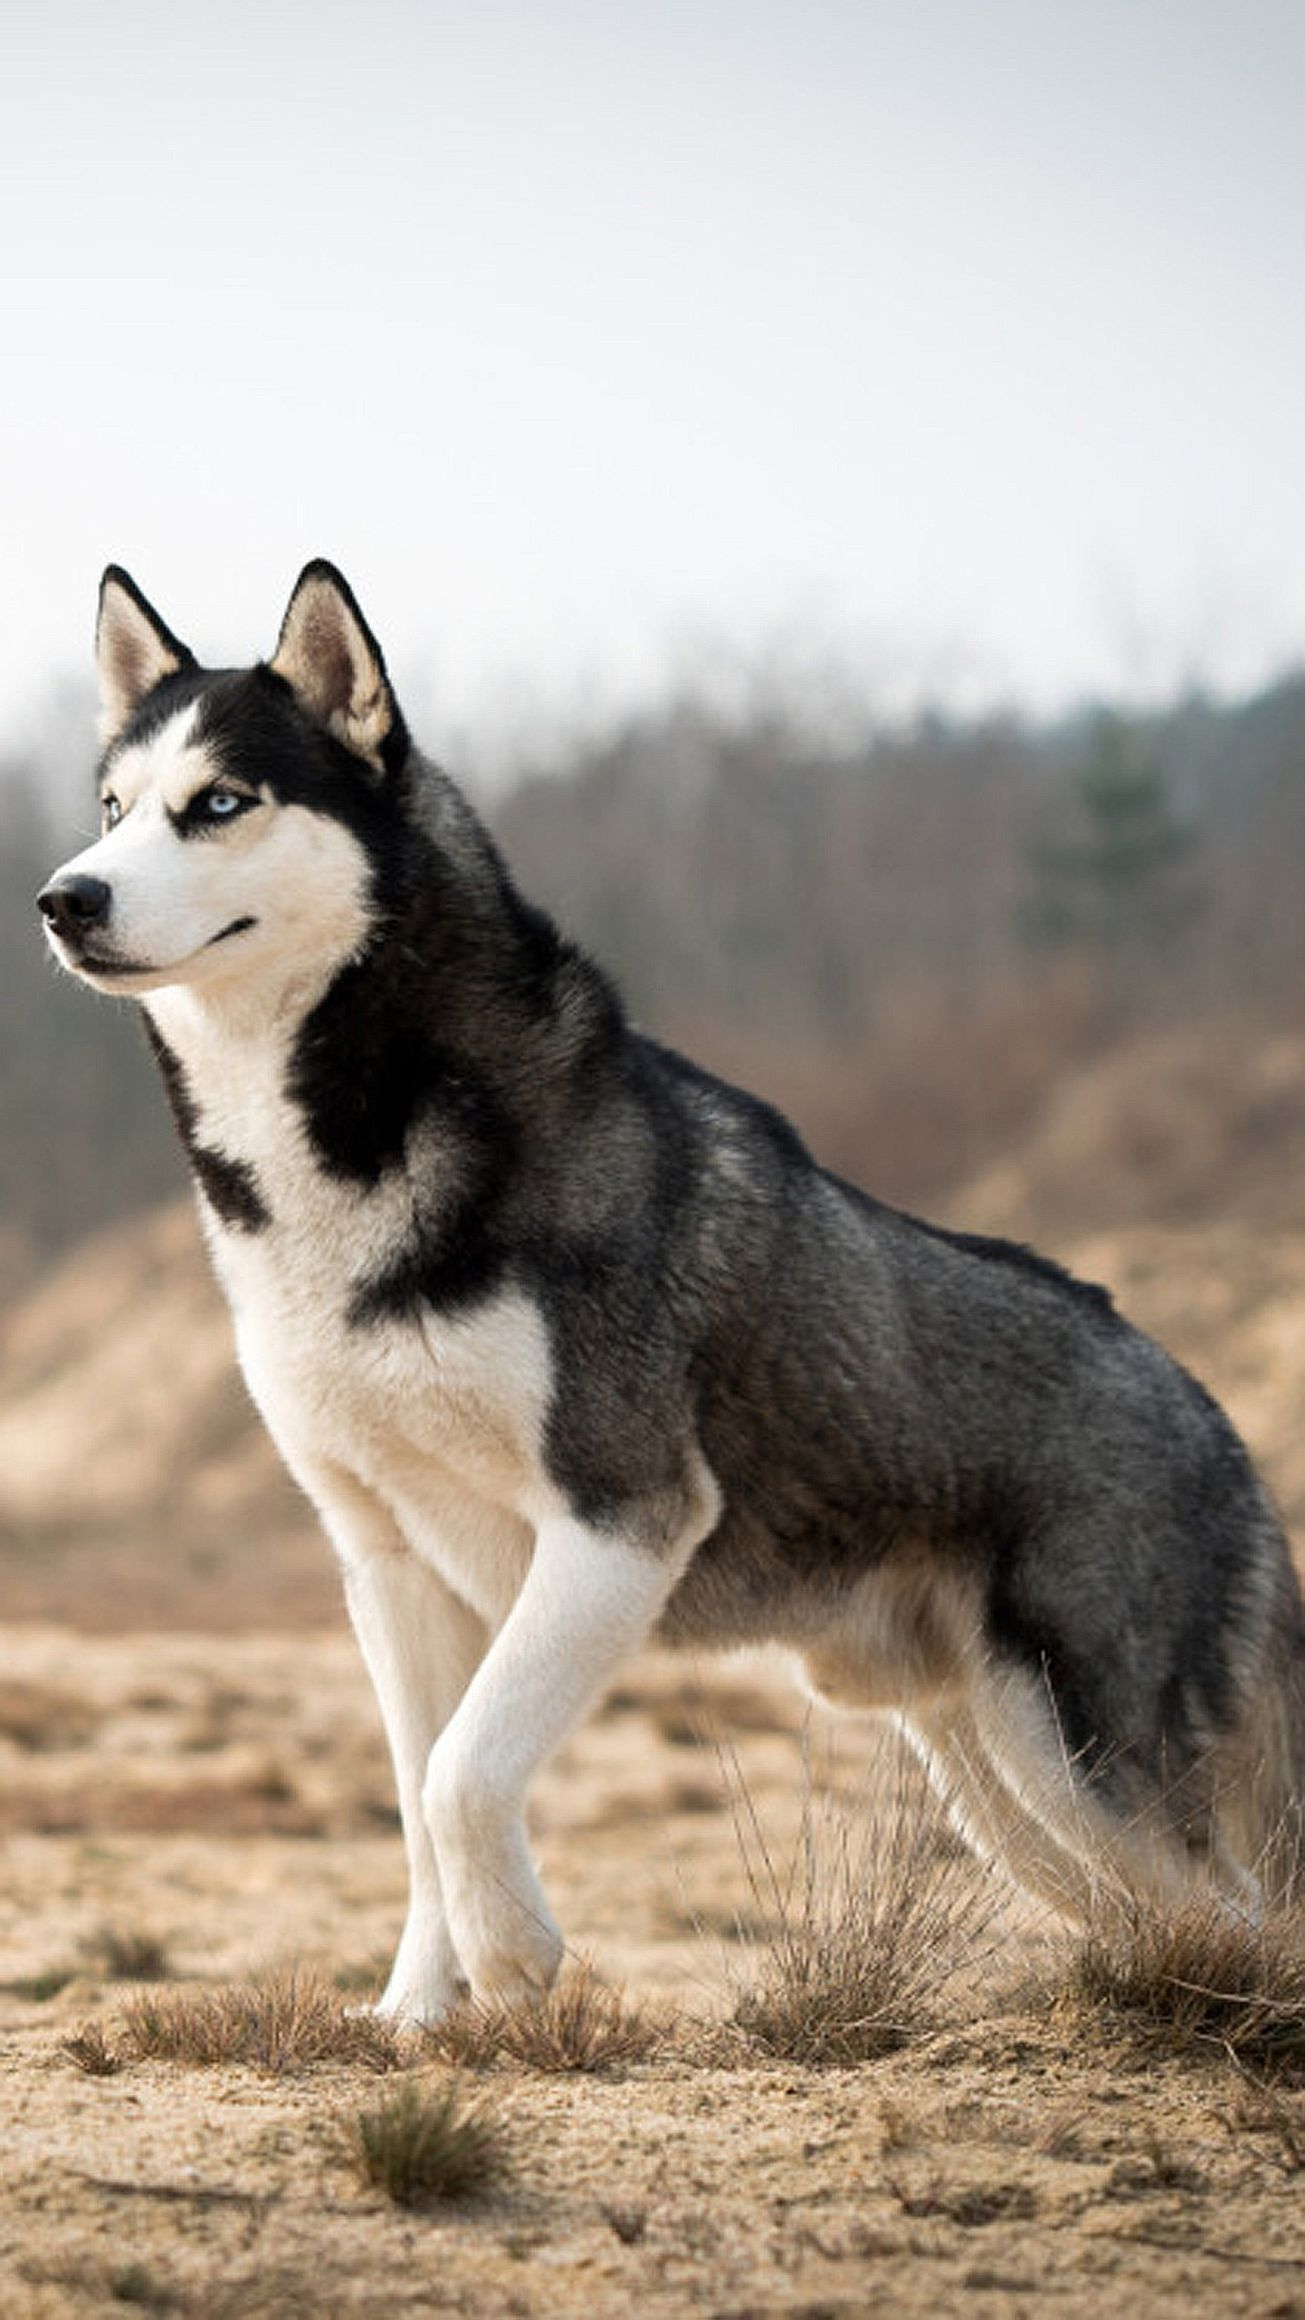 husky dog black white animal